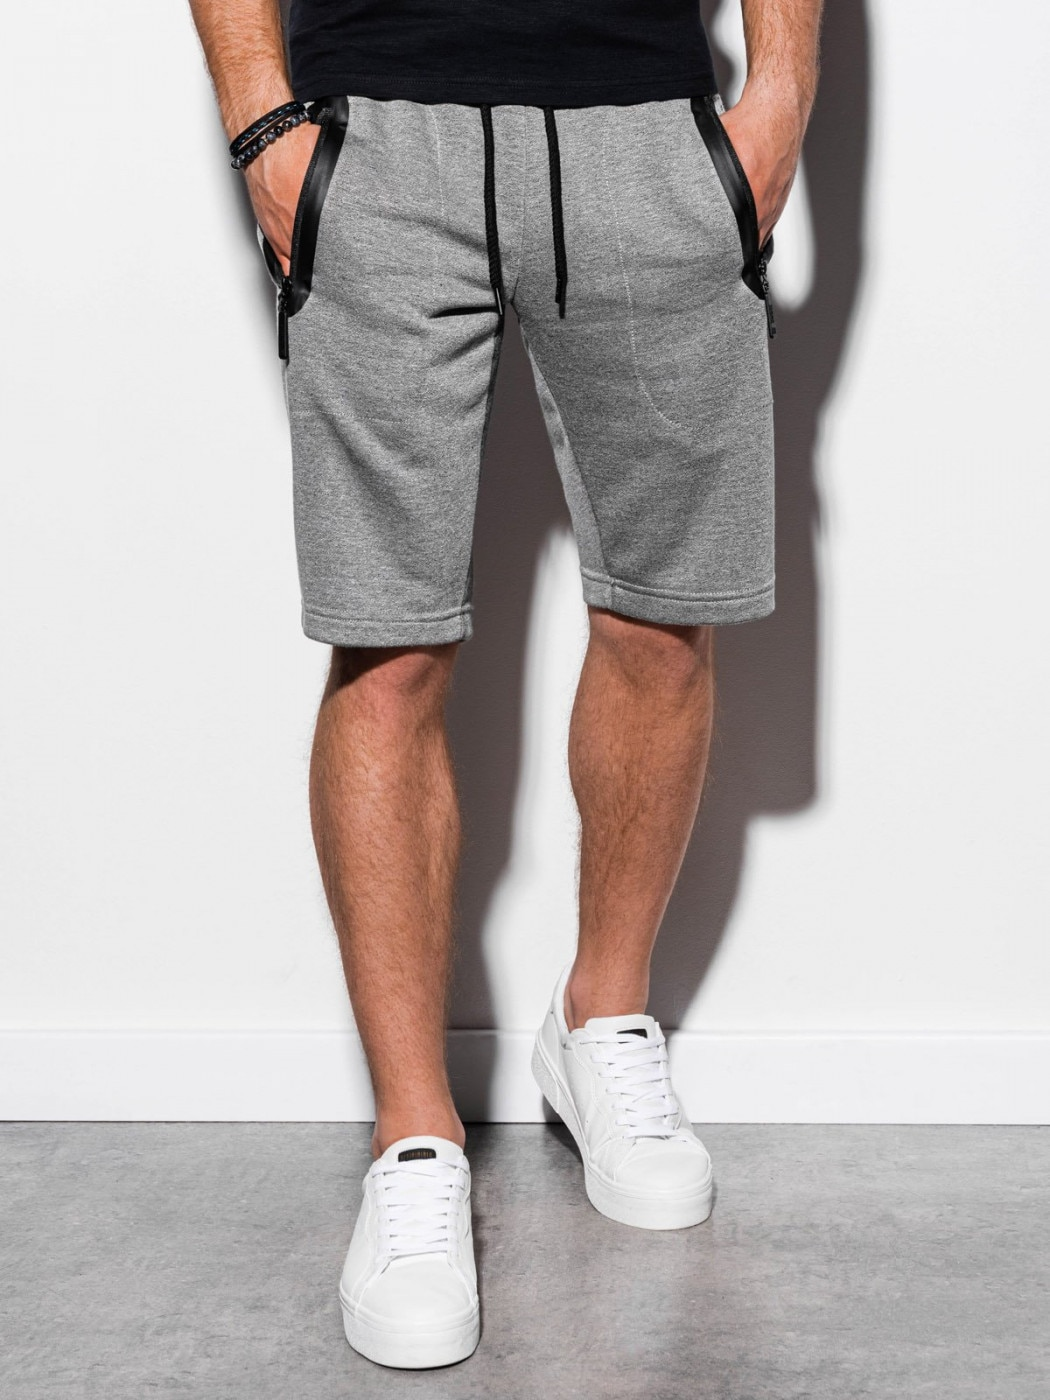 Men's shorts Ombre W239